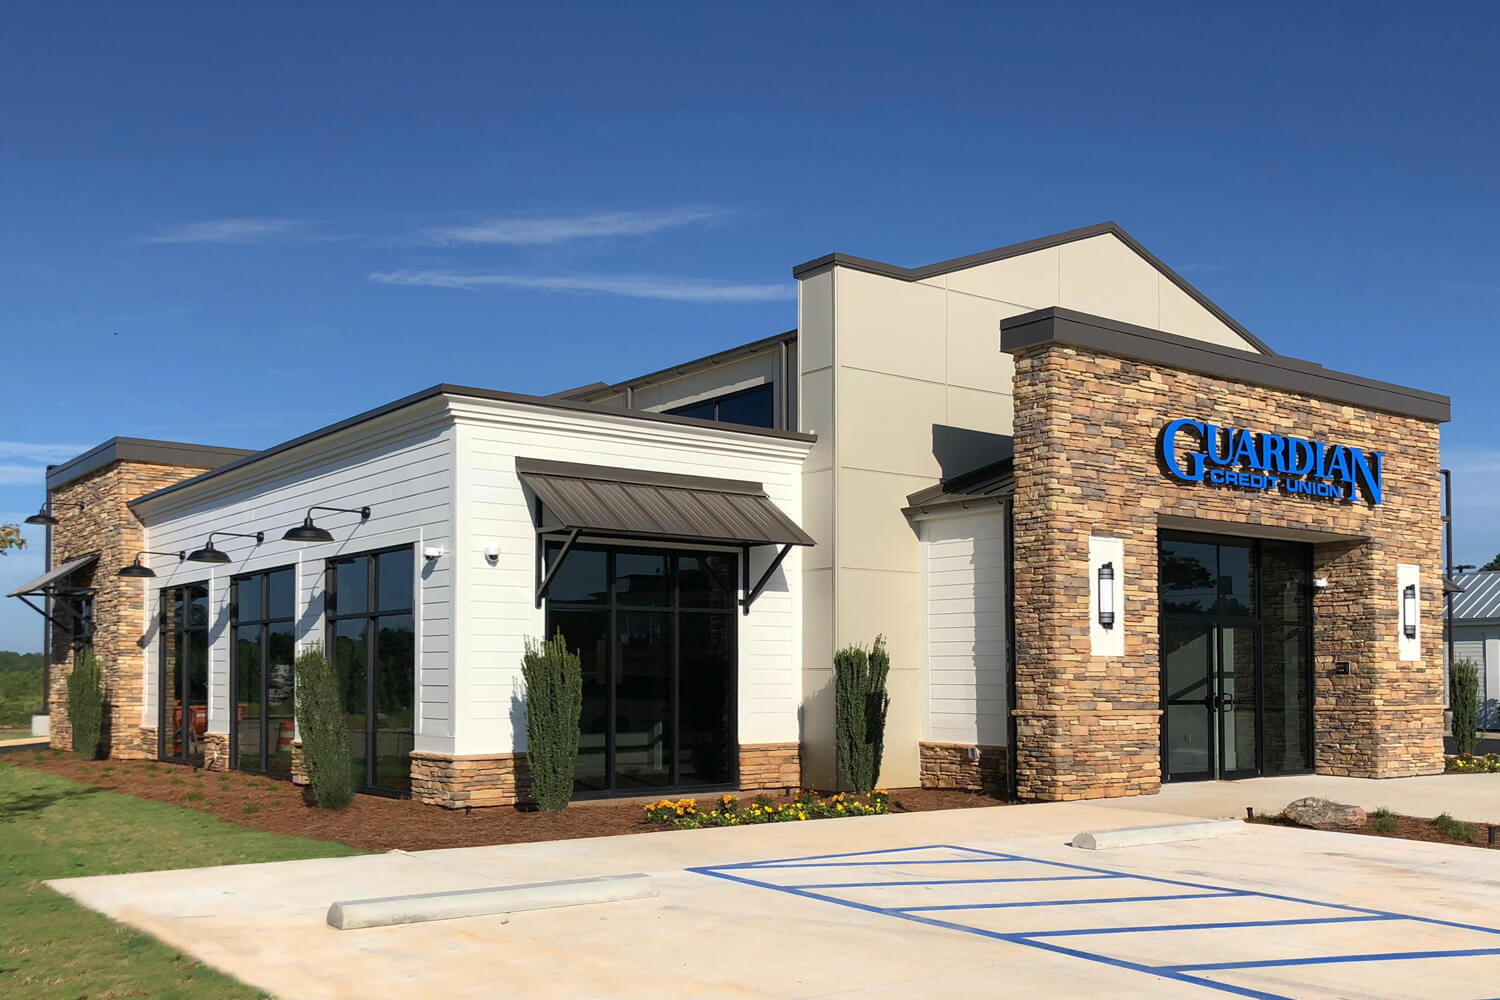 Guardian Credit Union - Front Elevation - Designed by Foshee Architecture